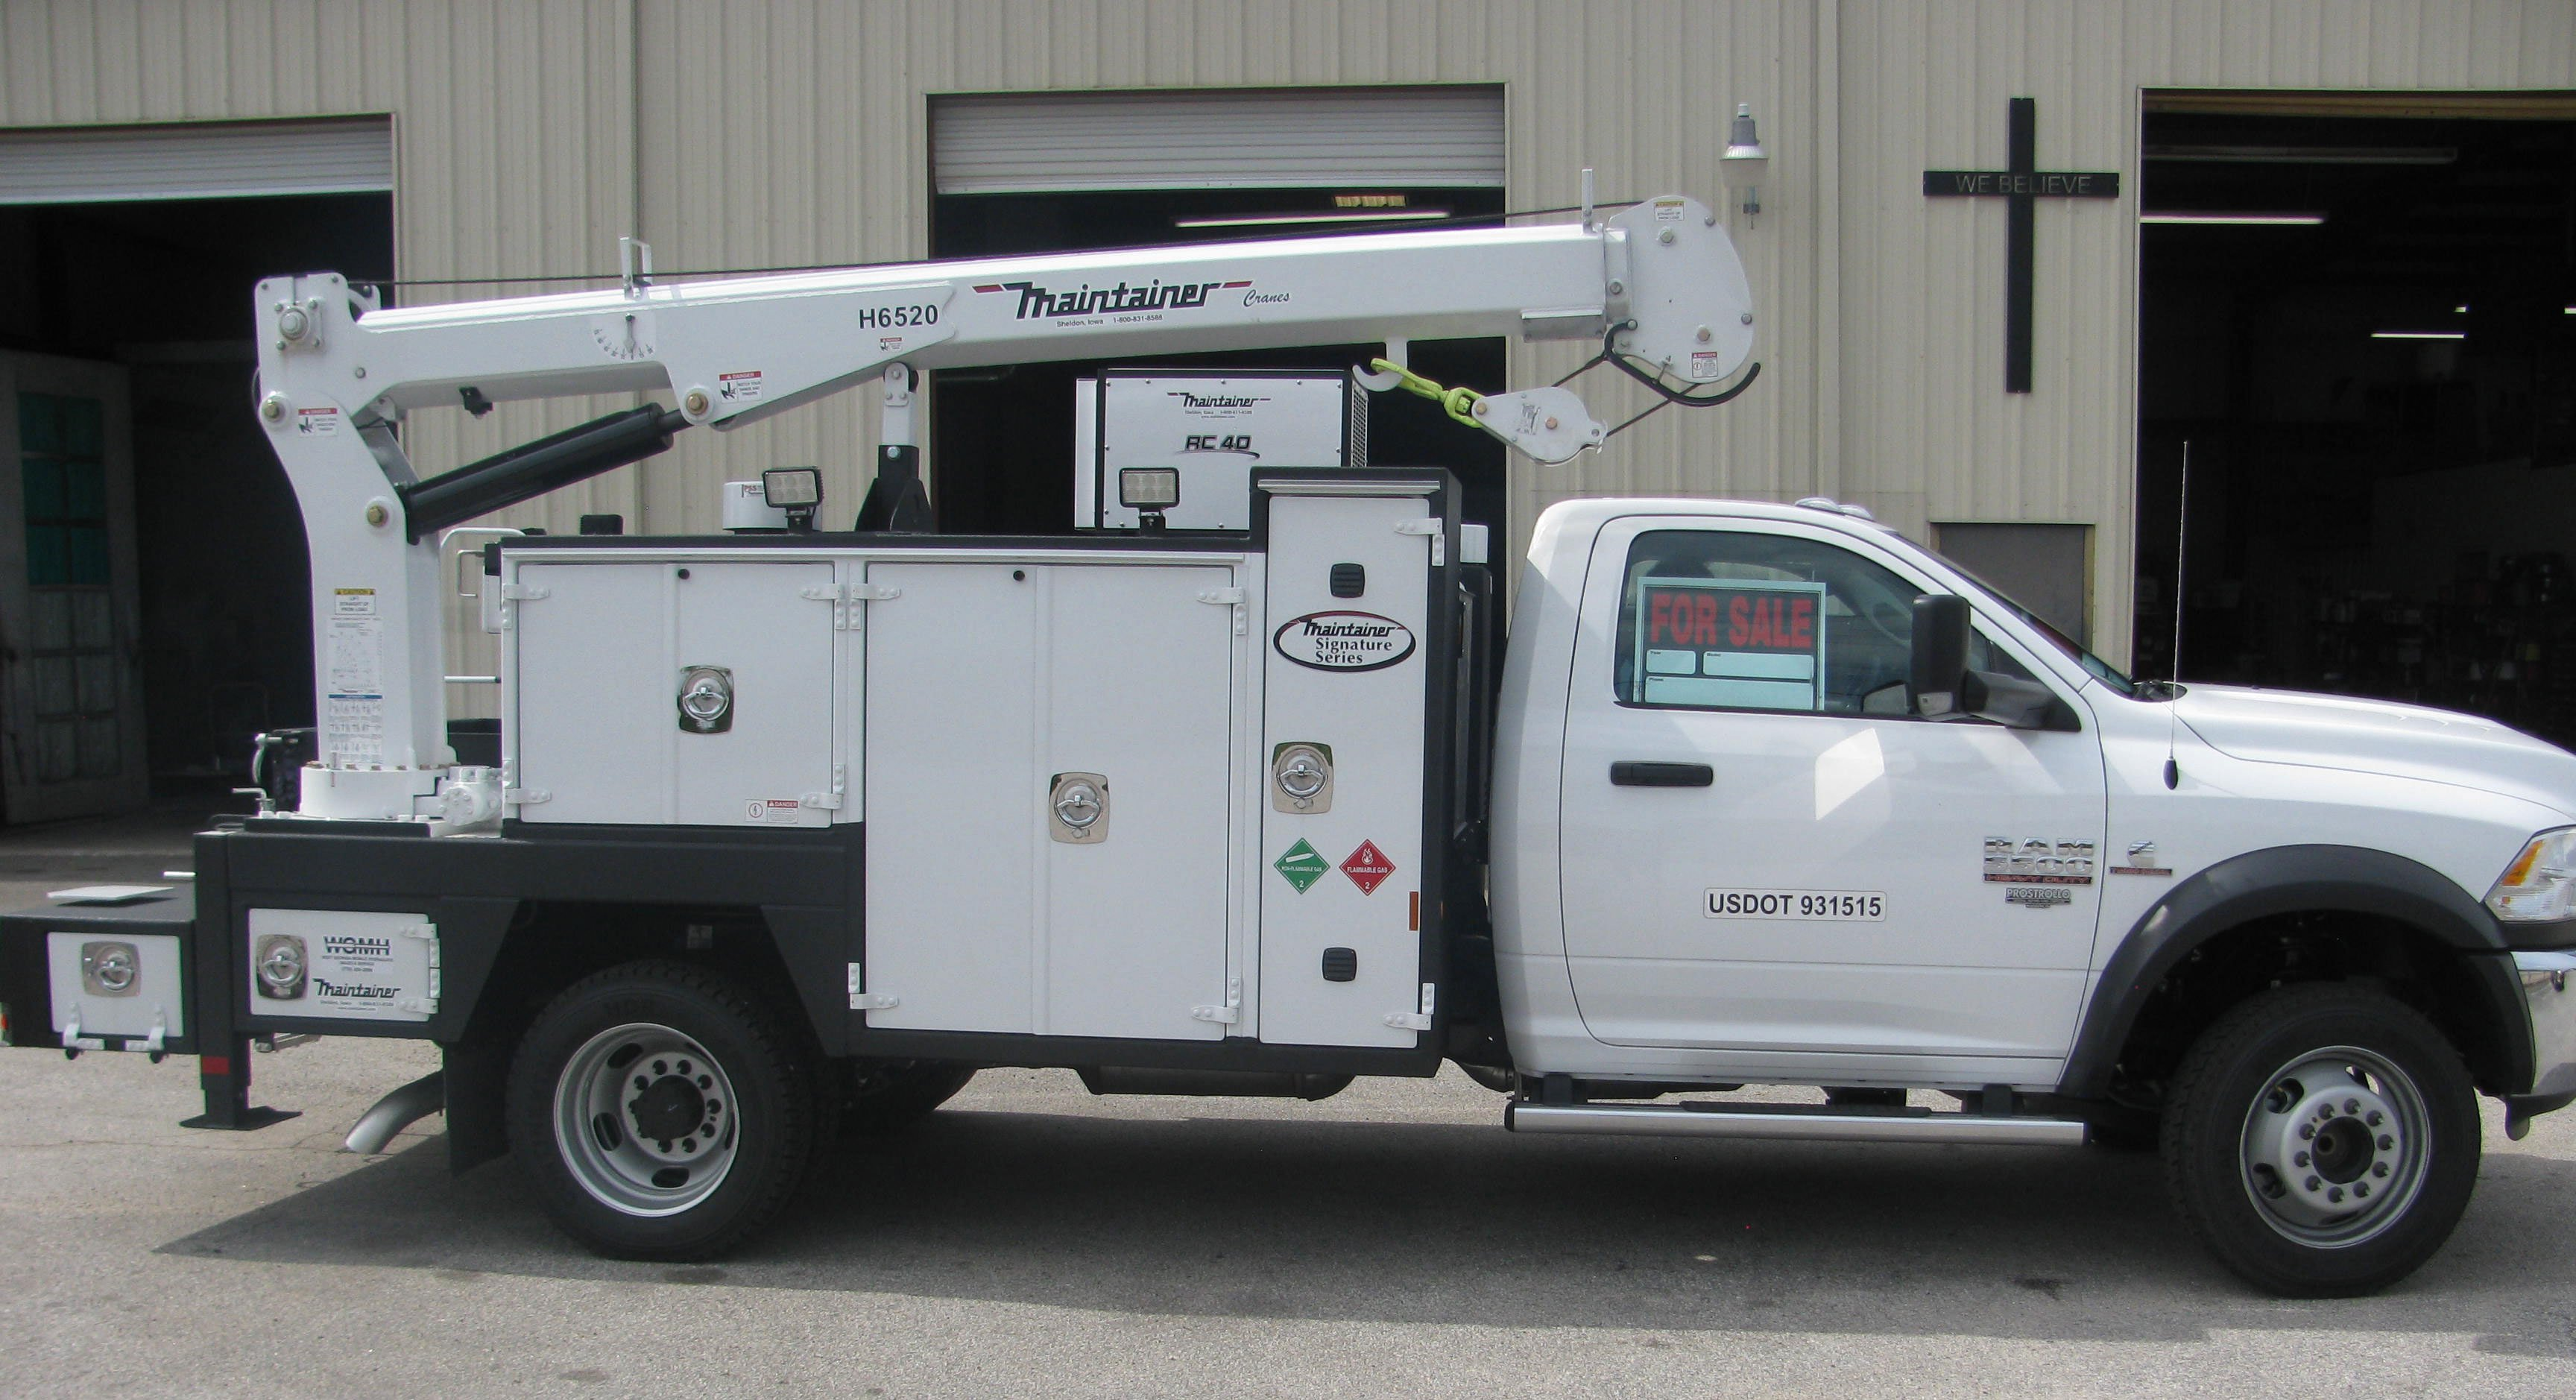 For Sale-New Maintainer Service Truck